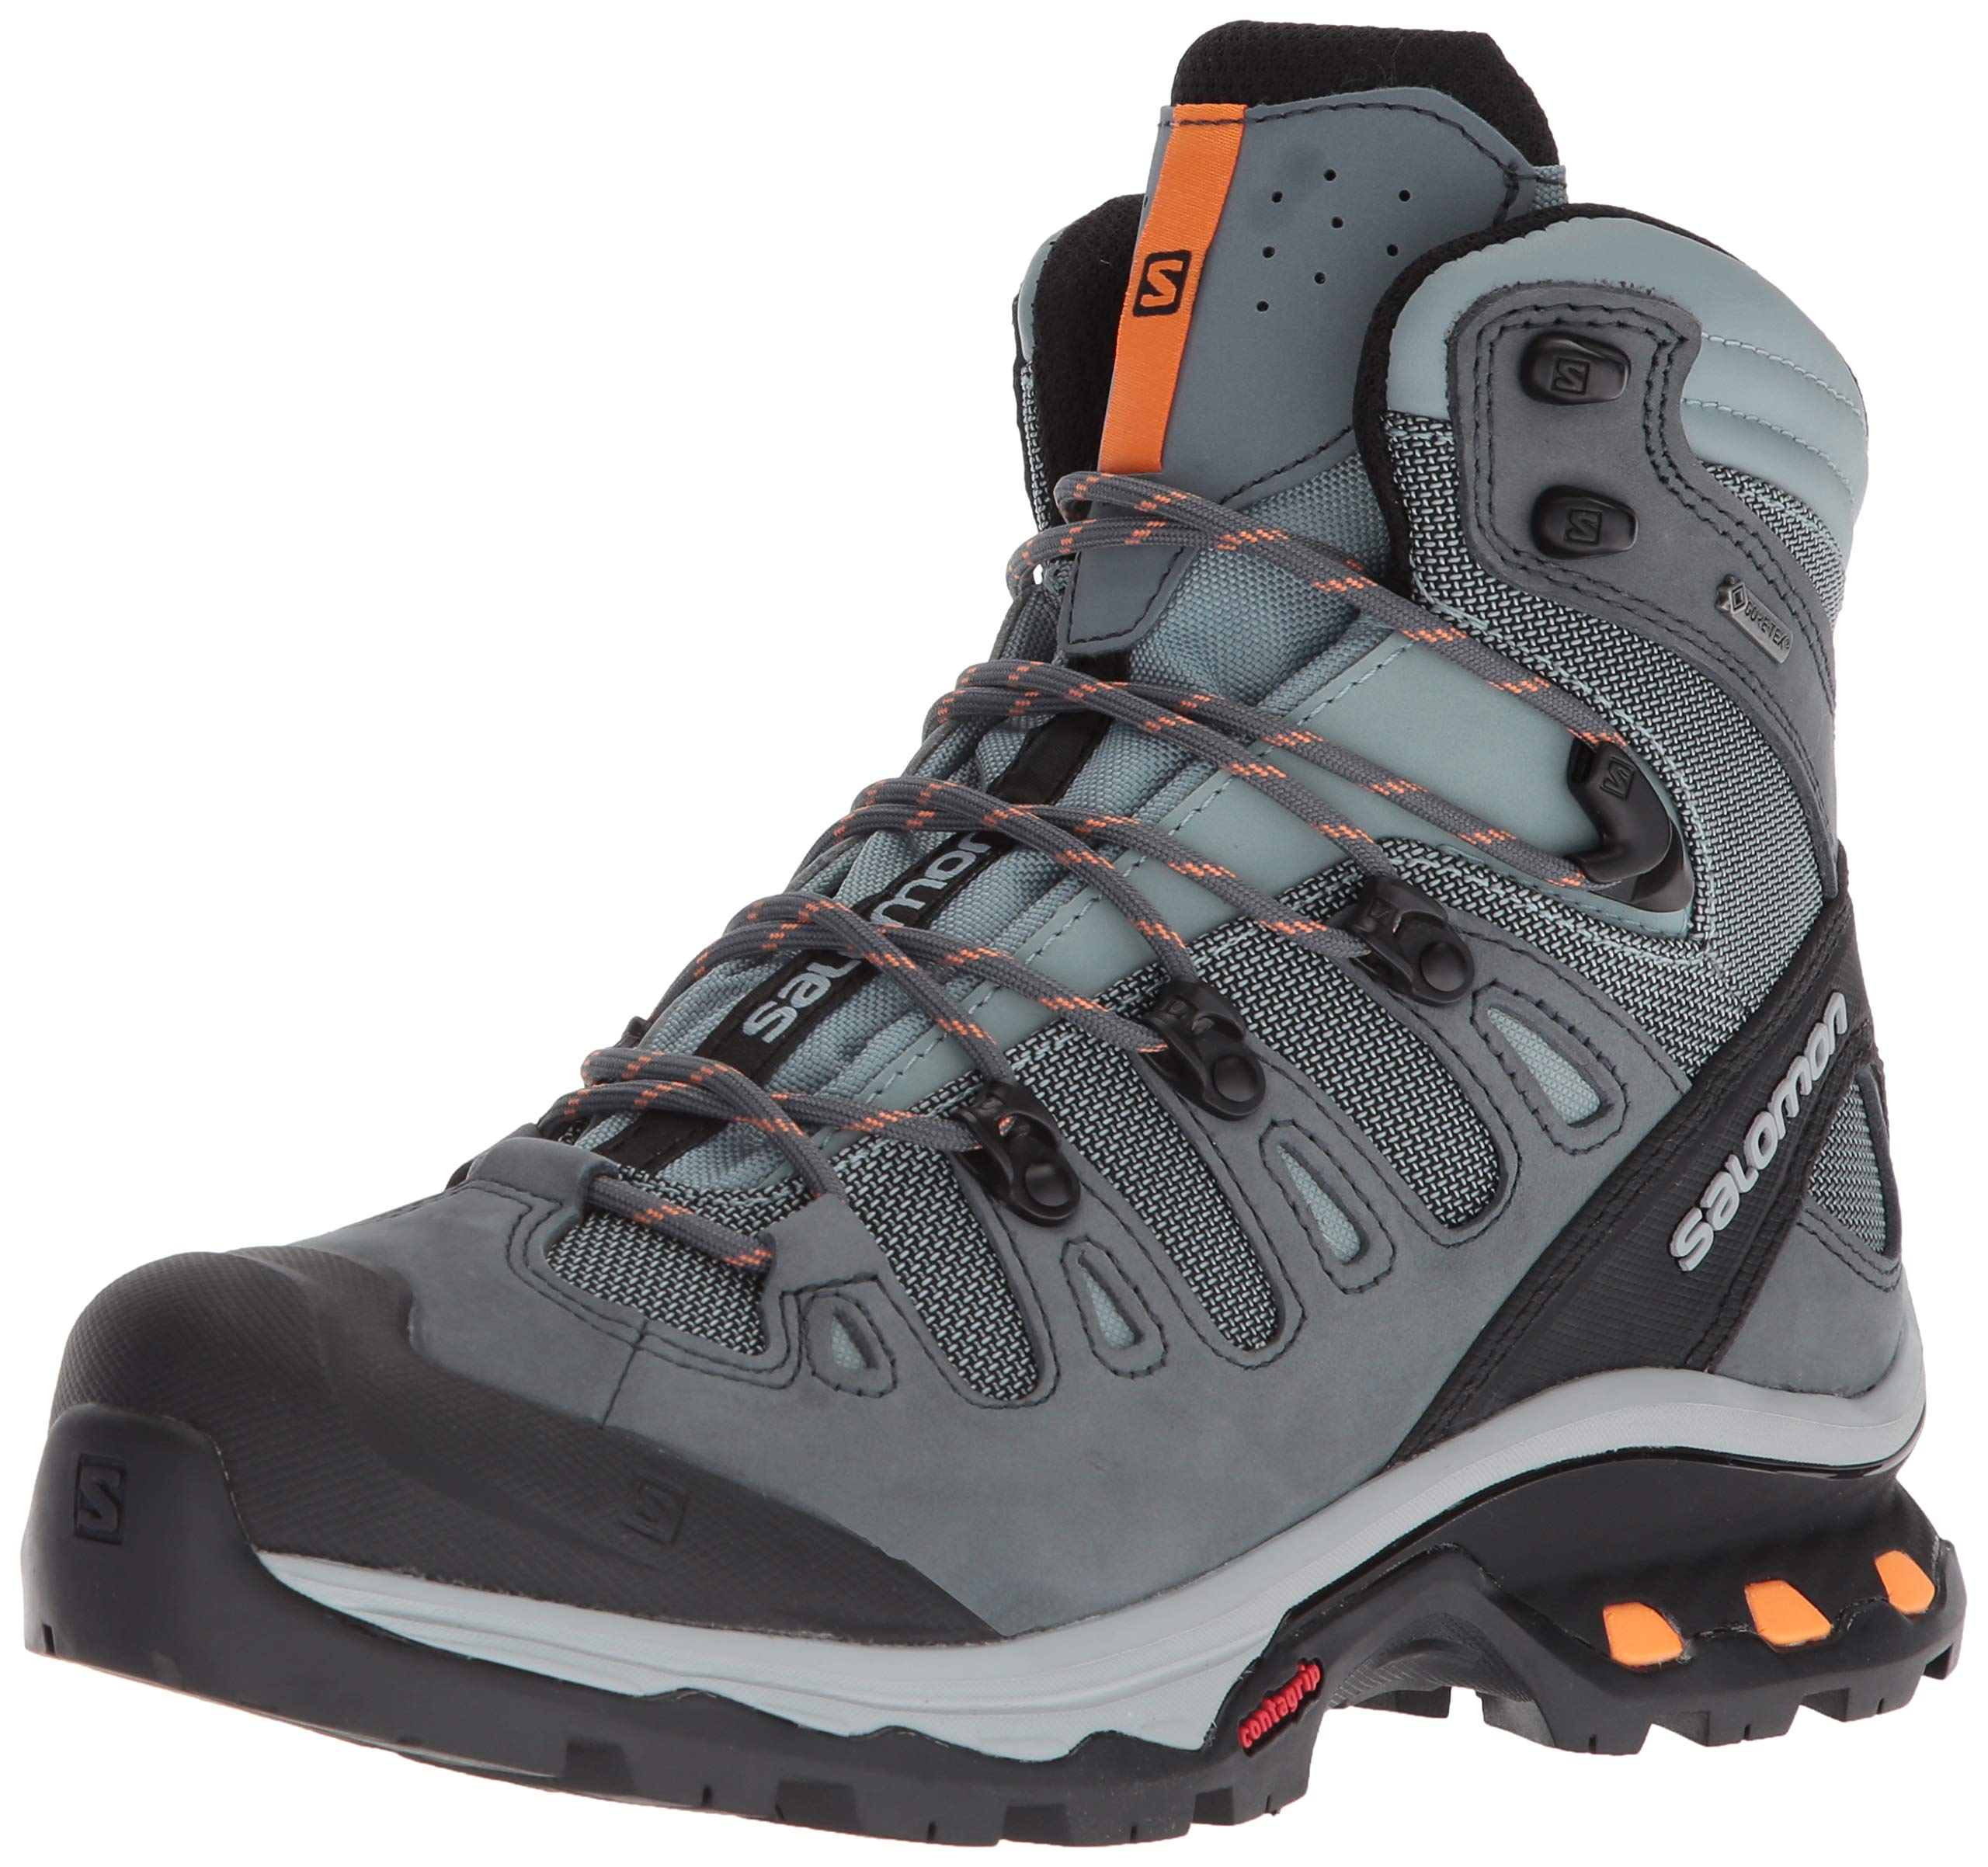 Salomon Women's Quest 4D 3 Gtx W Backpacking Boots, Lead/Stormy Weather, 5.5 B US